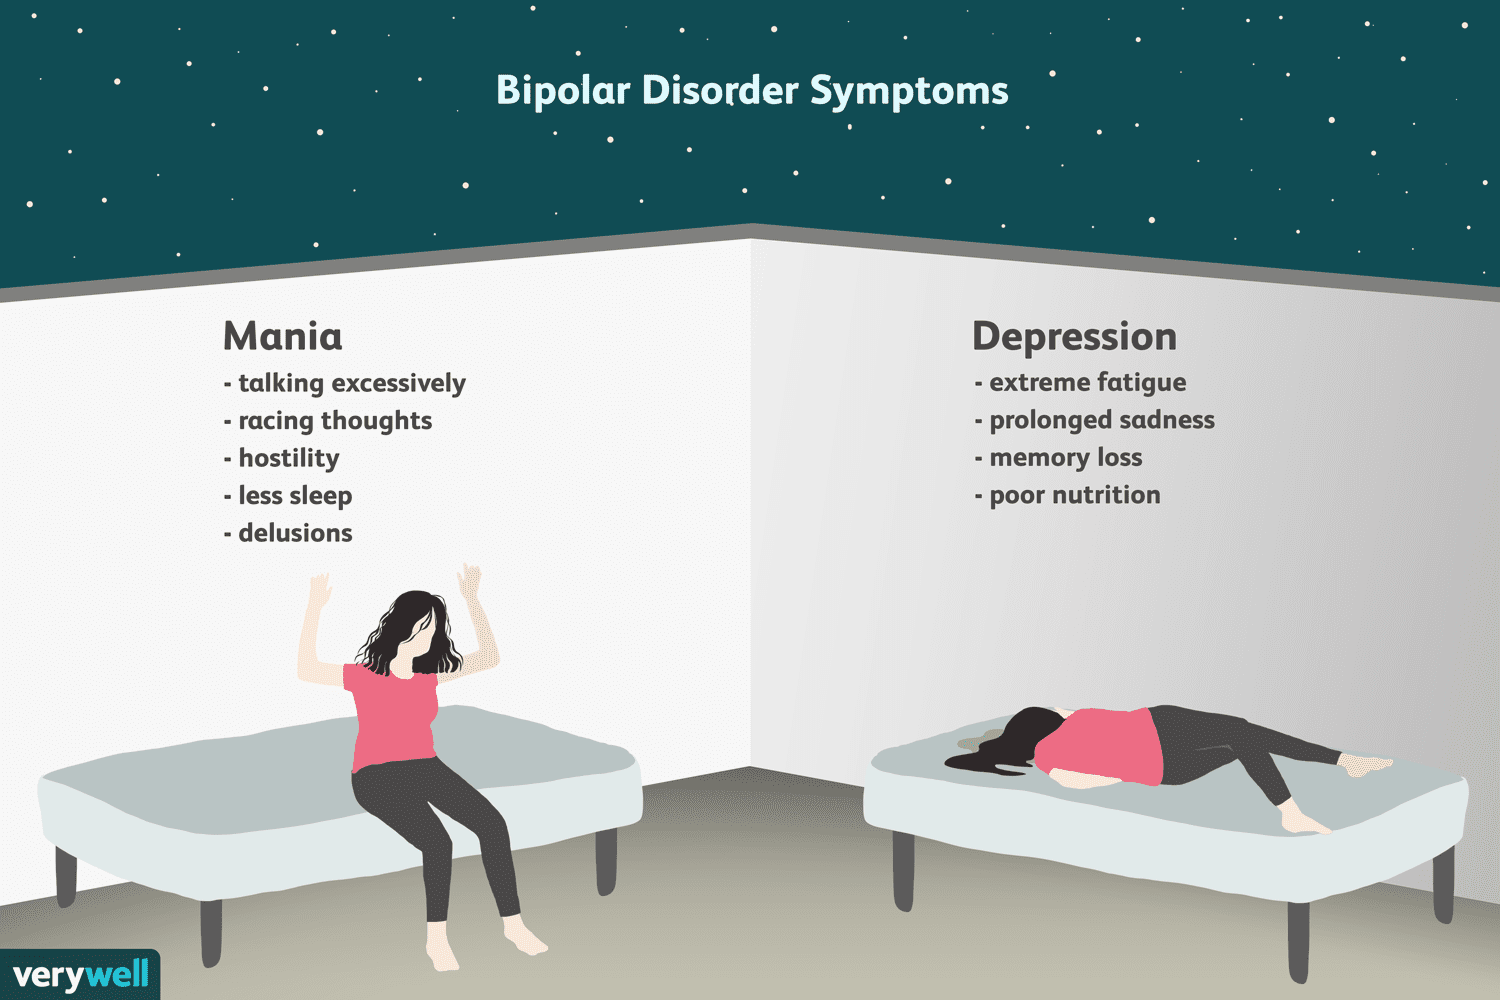 symptoms and diagnosis of bipolar disorder: an overview